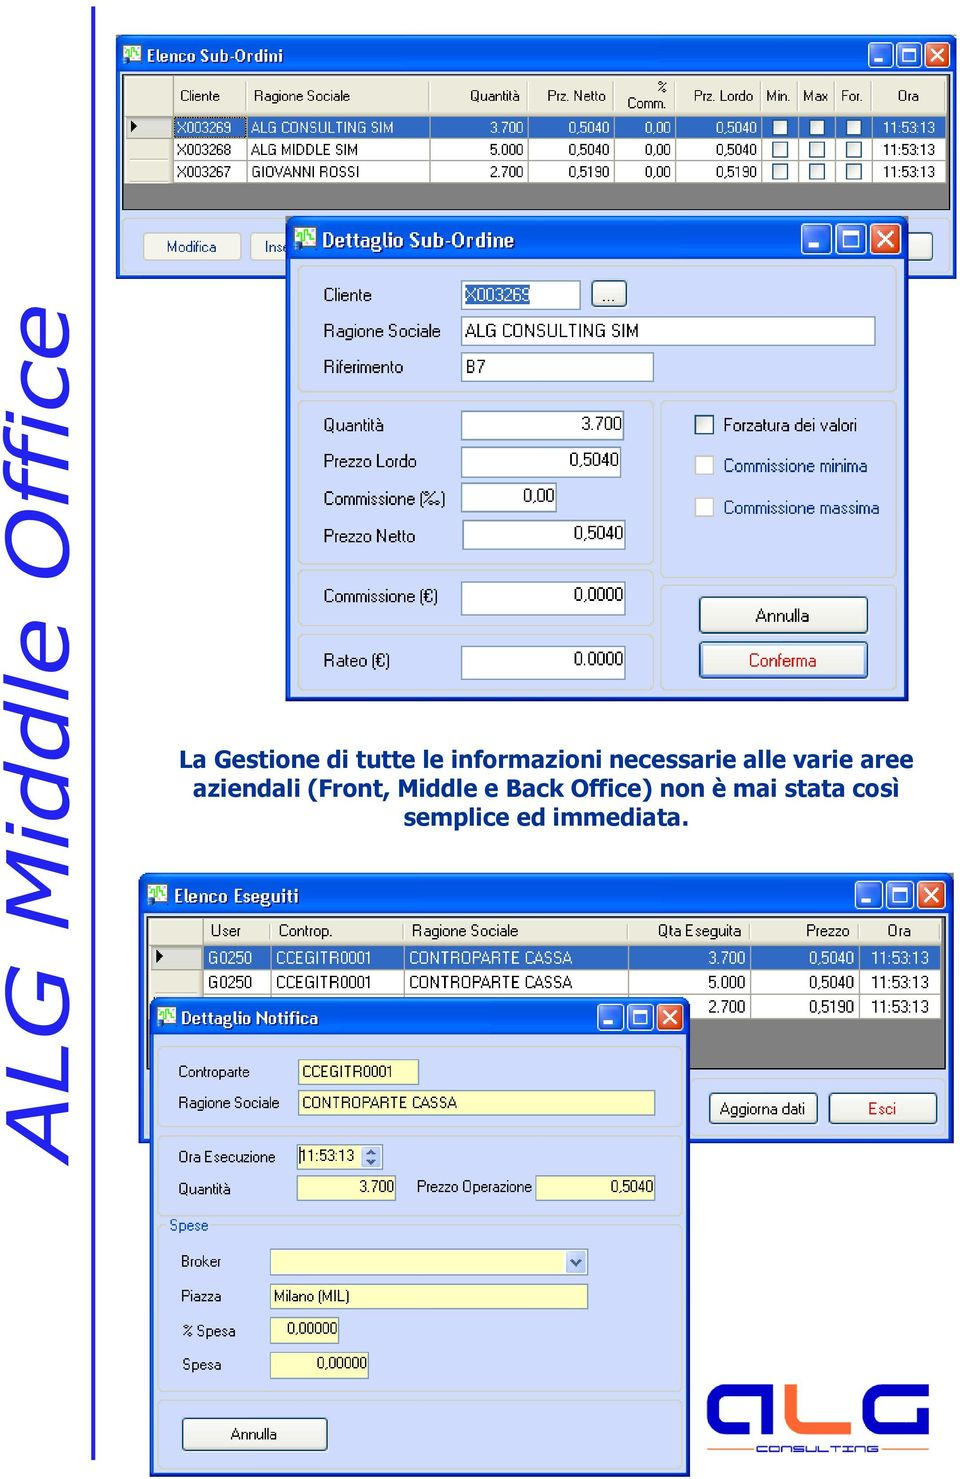 (Front, Middle e Back Office) non è